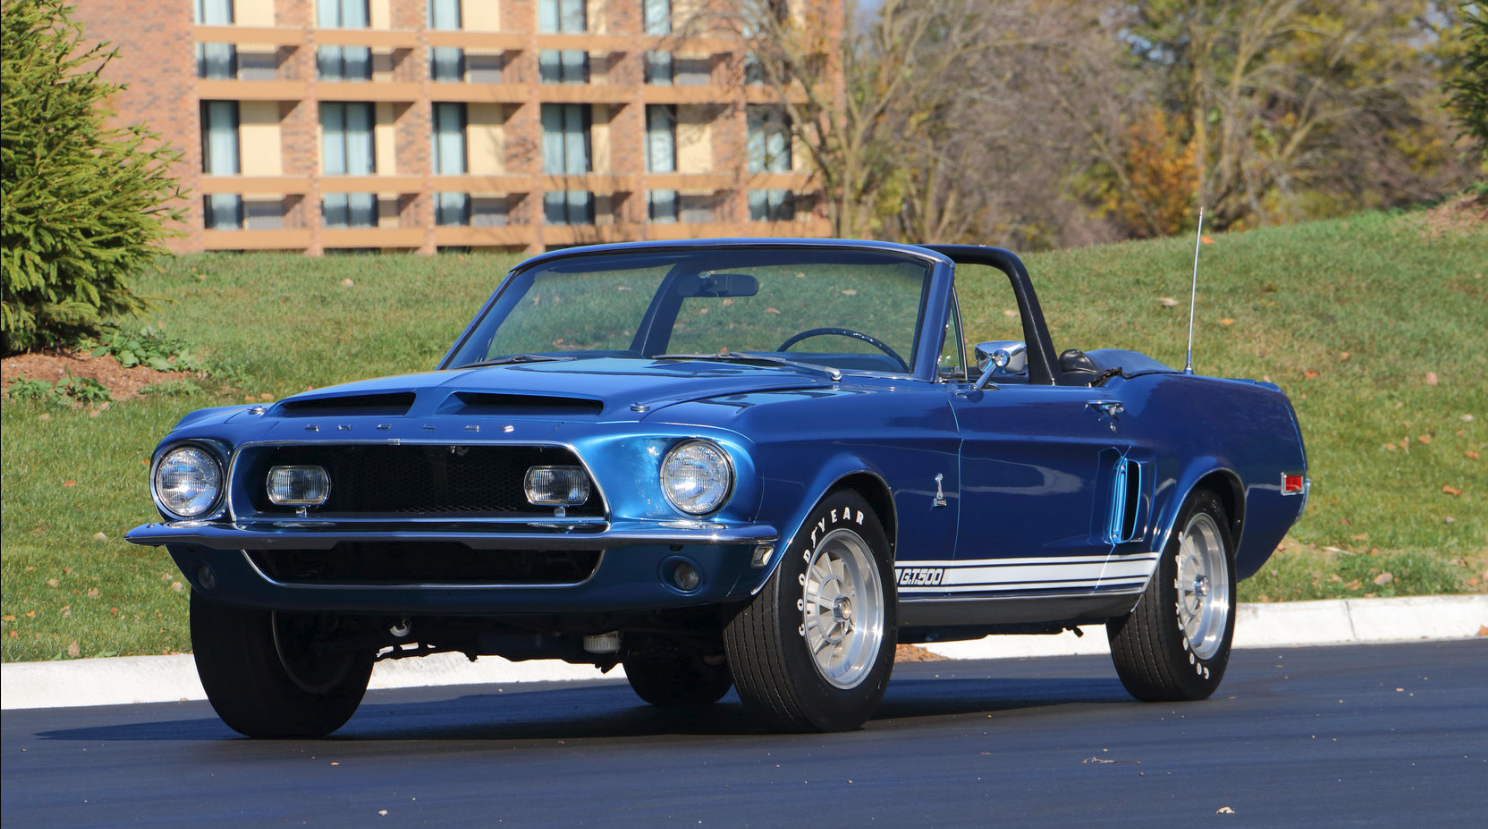 1968 Mustang Shelby GT500 Convertible